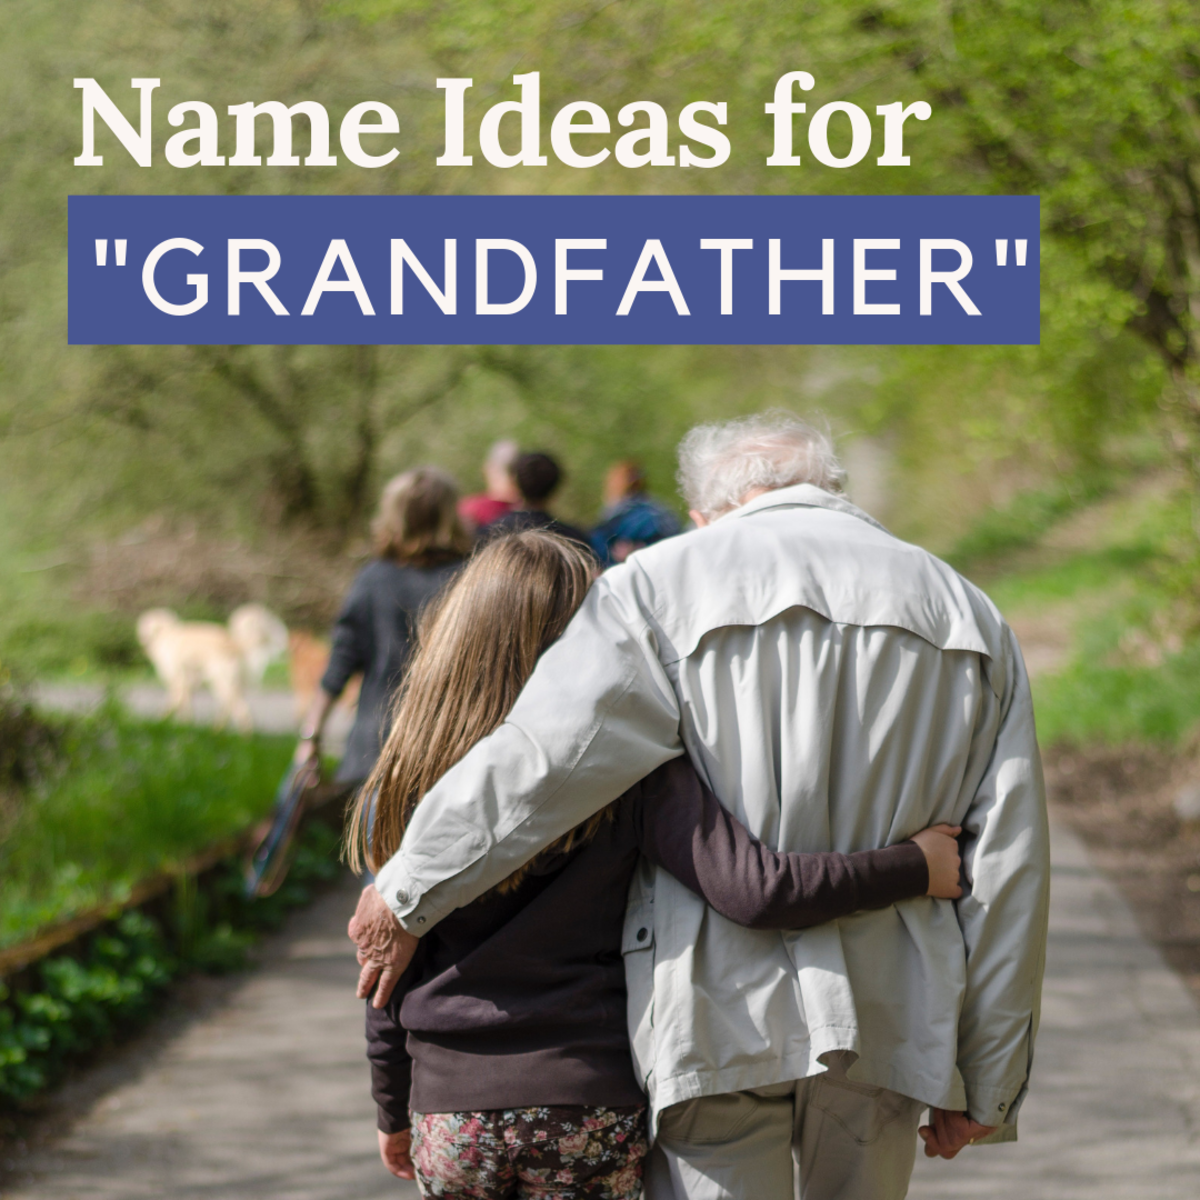 Alternative Name Ideas for Grandpa